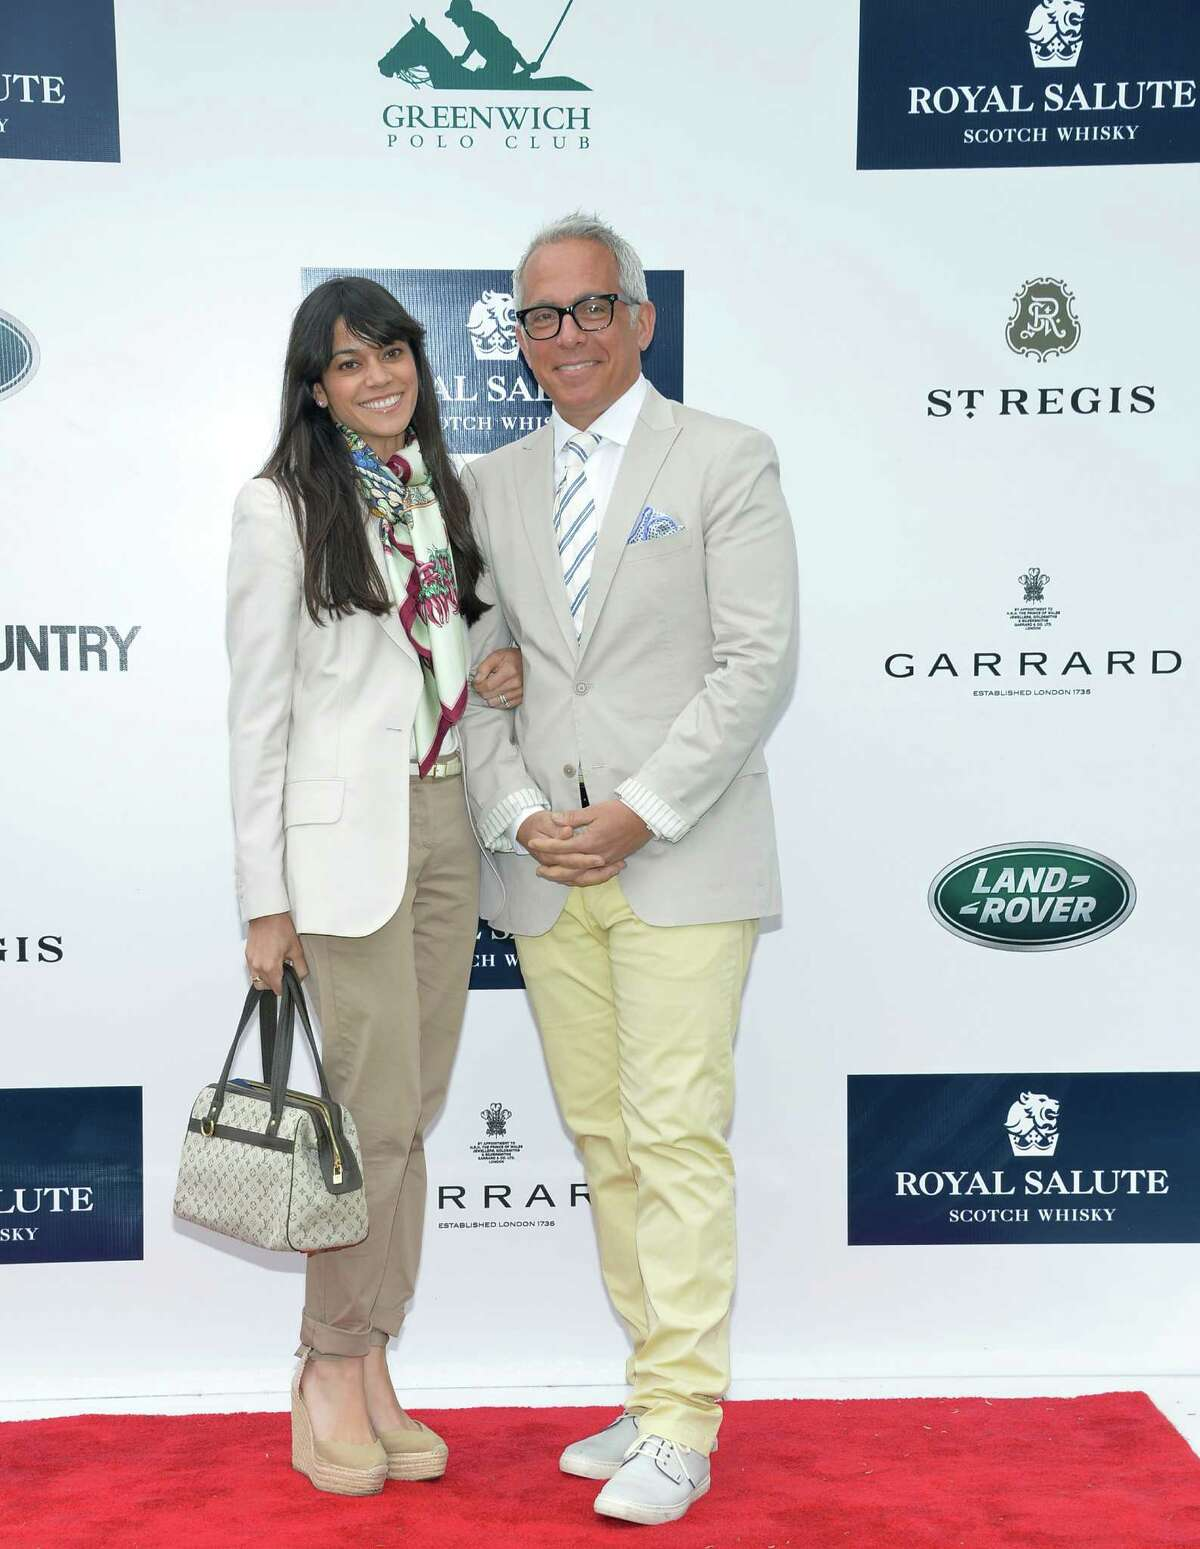 GREENWICH, CT - MAY 15: Margaret Anne Williams and Chef Geoffrey Zakarian attend the The Sentebale Royal Salute Polo Cup at The Greenwich Polo Club on Wednesday 15th May. The Sentebale Land Rover team was captained by Royal Salute Ambassador Malcom Borwick with team members Mark Ganzi, Michael Carrazza and Prince Harry, one of the founding Patrons of Sentebale. The St. Regis polo team was captained by Sentebale's Ambassador Nacho Figueras with team members Peter Orthwein, Steve Lefkowitz and Dawn Jones. Royal Salute played host to a number of high profile celebrities. Royal Salute World Polo is a global programme, which now supports tournaments across four continents. The luxury Scotch's involvement with Polo is founded on the game's incredible power, skill and elegance; qualities which blend perfectly with Royal Salute Scotch Whisky, at Greenwich Polo Club on May 15, 2013 in Greenwich, Connecticut.